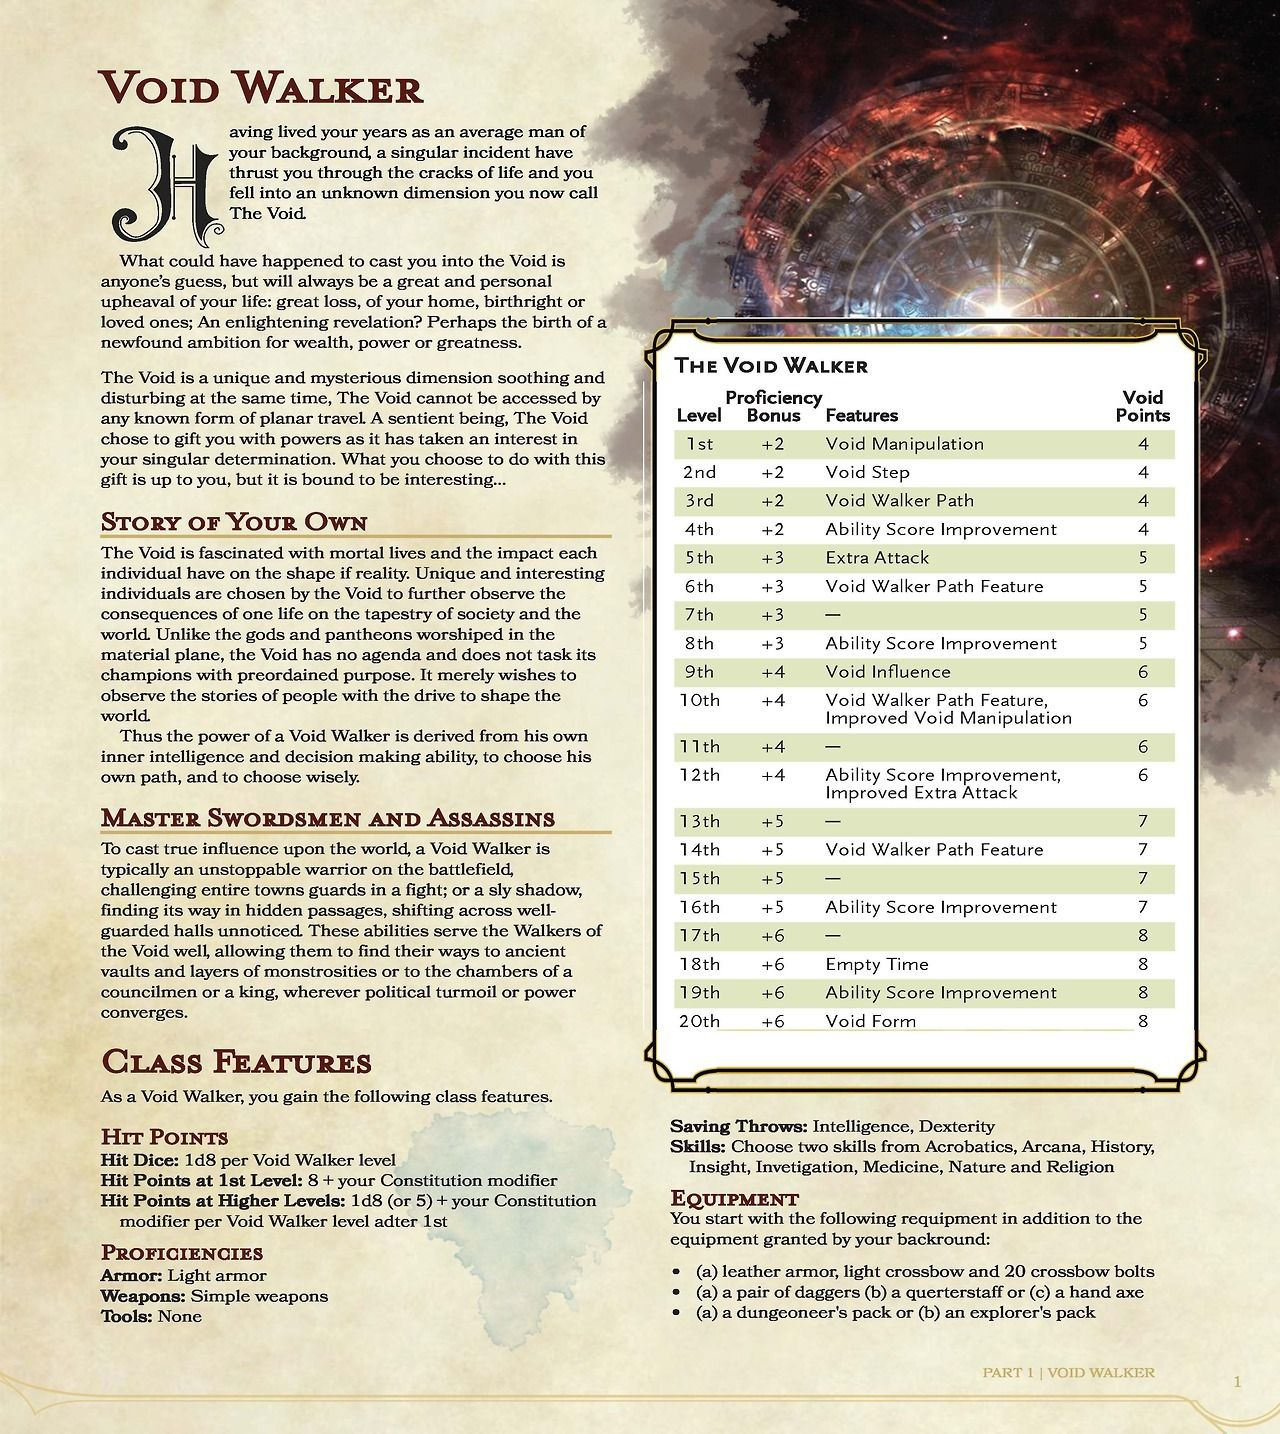 Void Walker Class (inspired by Dishonored) | homebrew rpg in